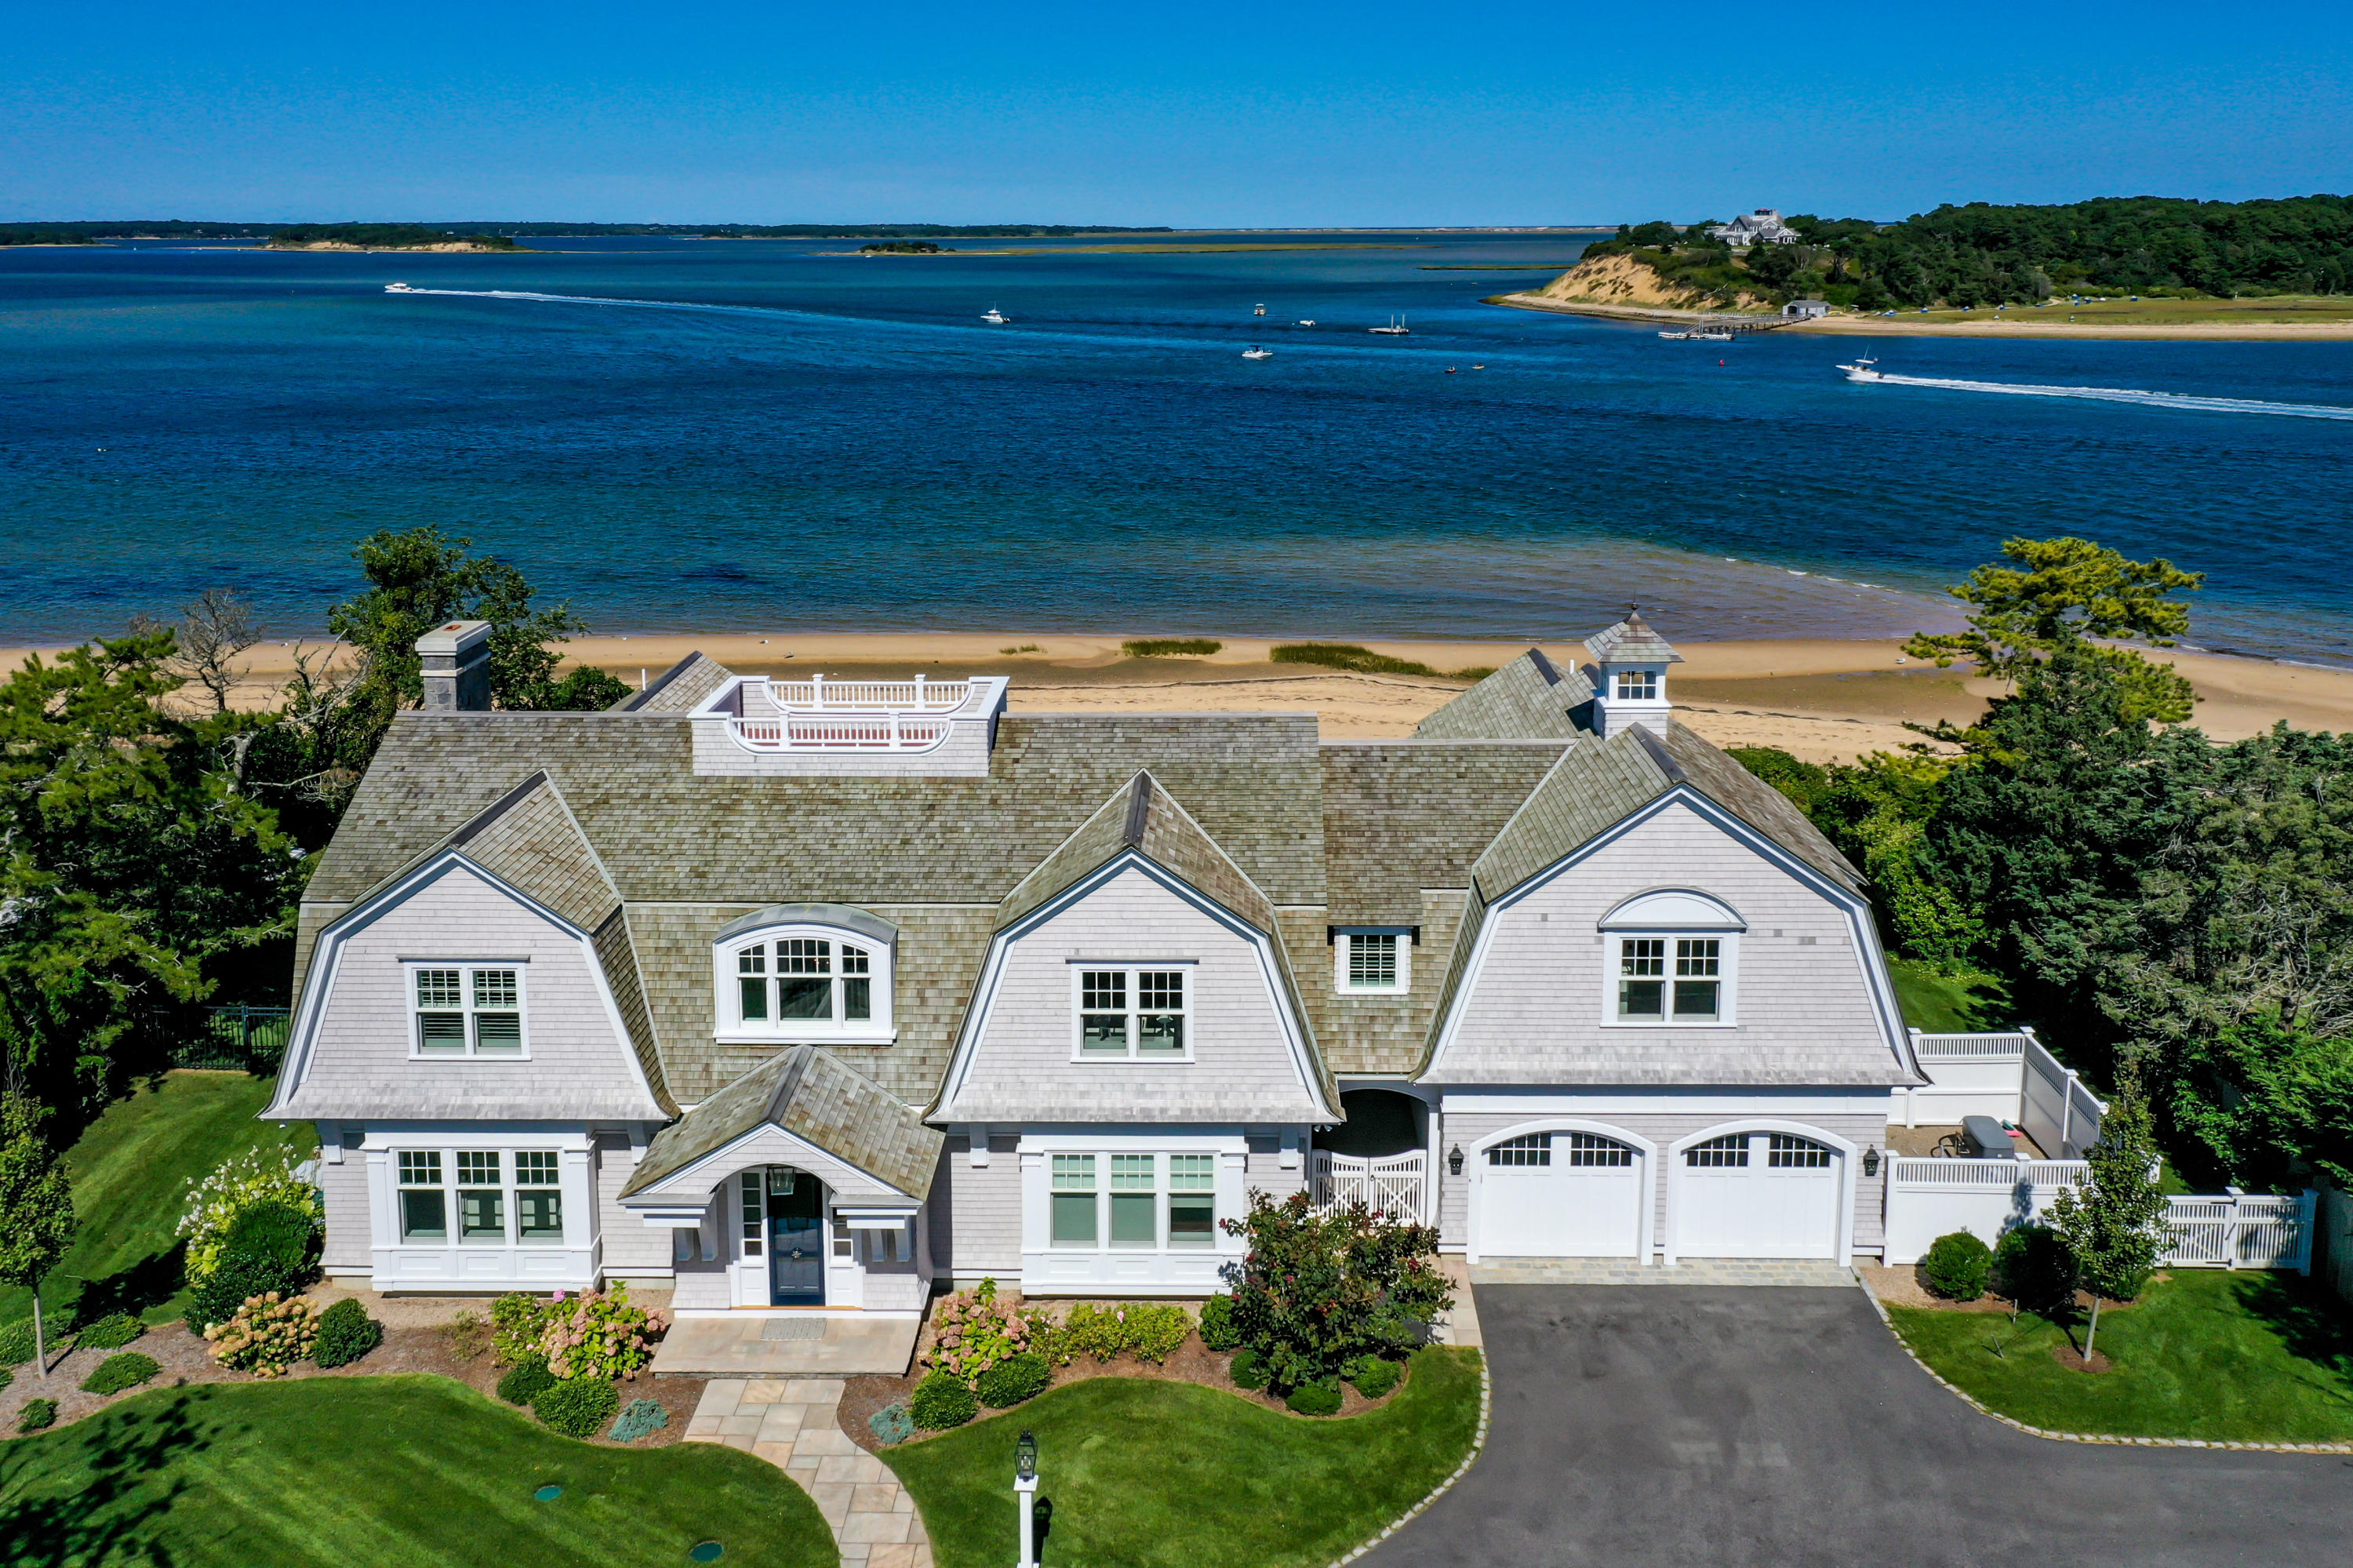 202 Eastward Road, Chatham MA, 02633 sales details